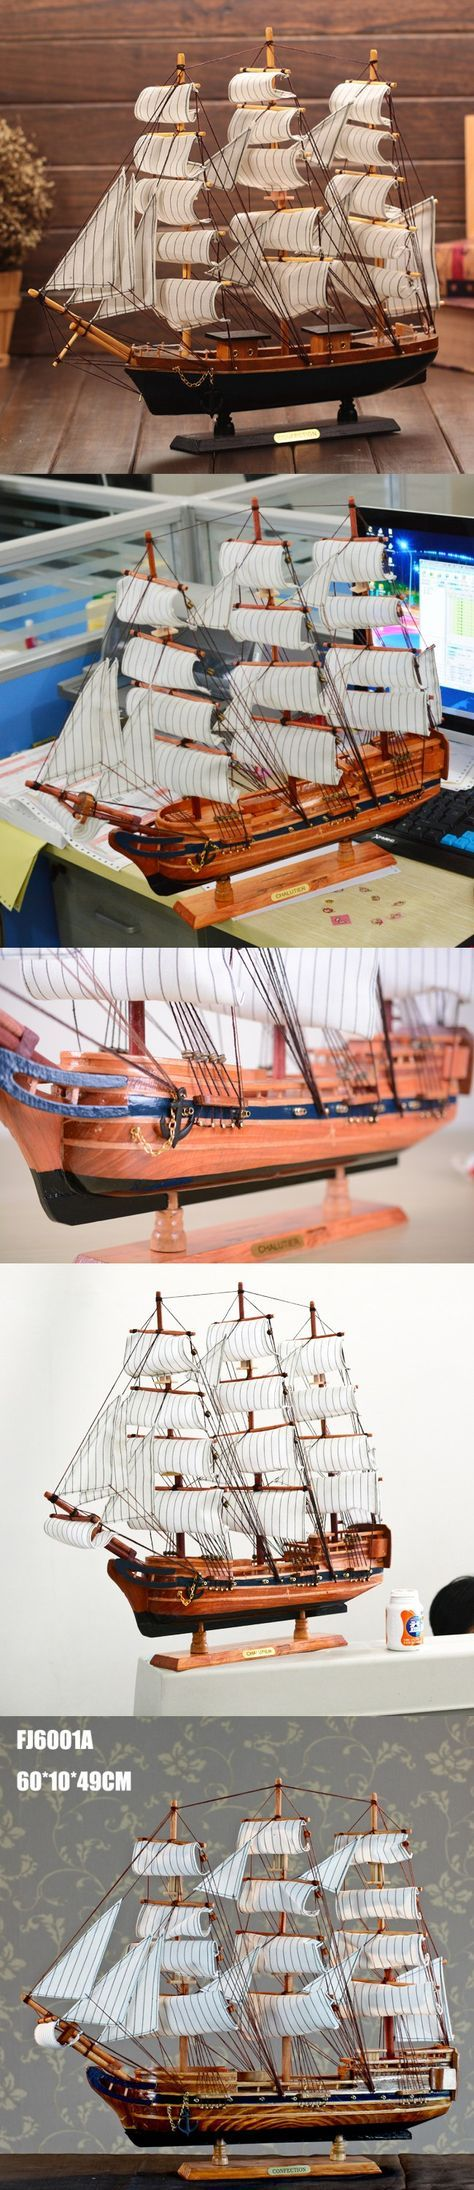 DIY Wooden 60 * 51CM Boat Ship Craft Rudder Large Sailboat Figurine Nautical Decor Wood Craft Gift Home Decoration Accessories $85.68